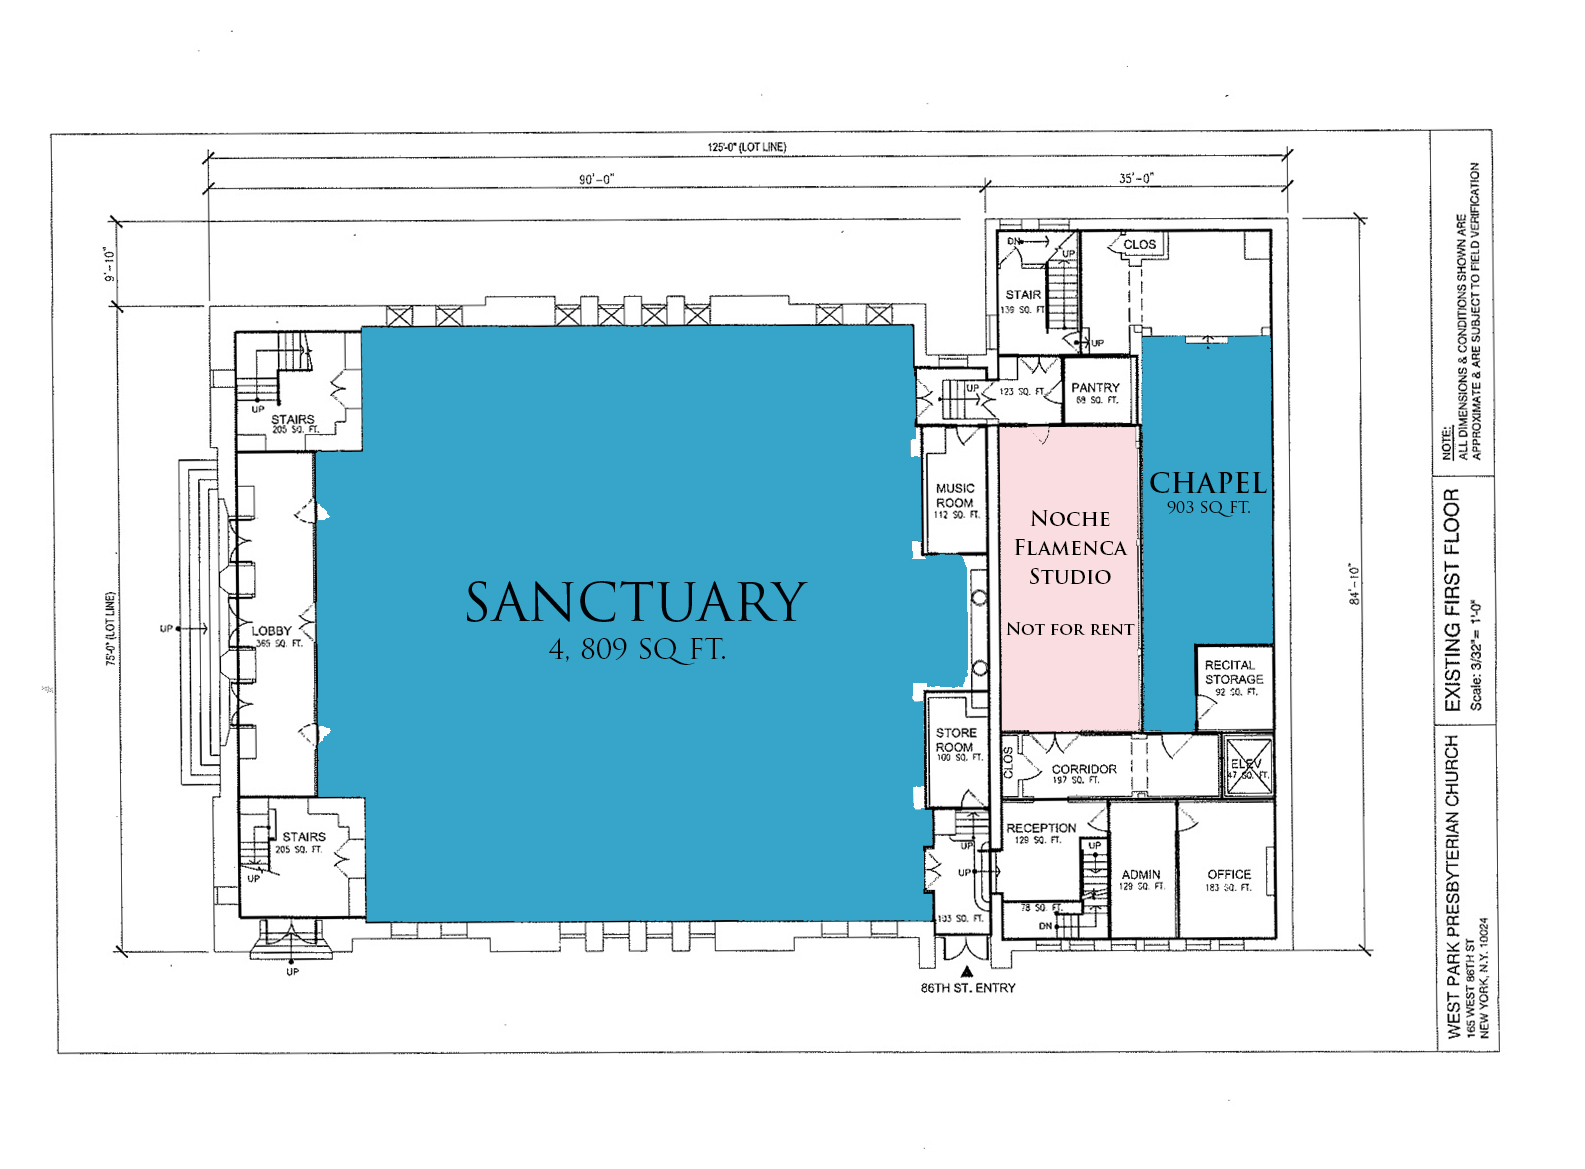 Rooms pricing west park presbyterian church for Church blueprints and floor plans